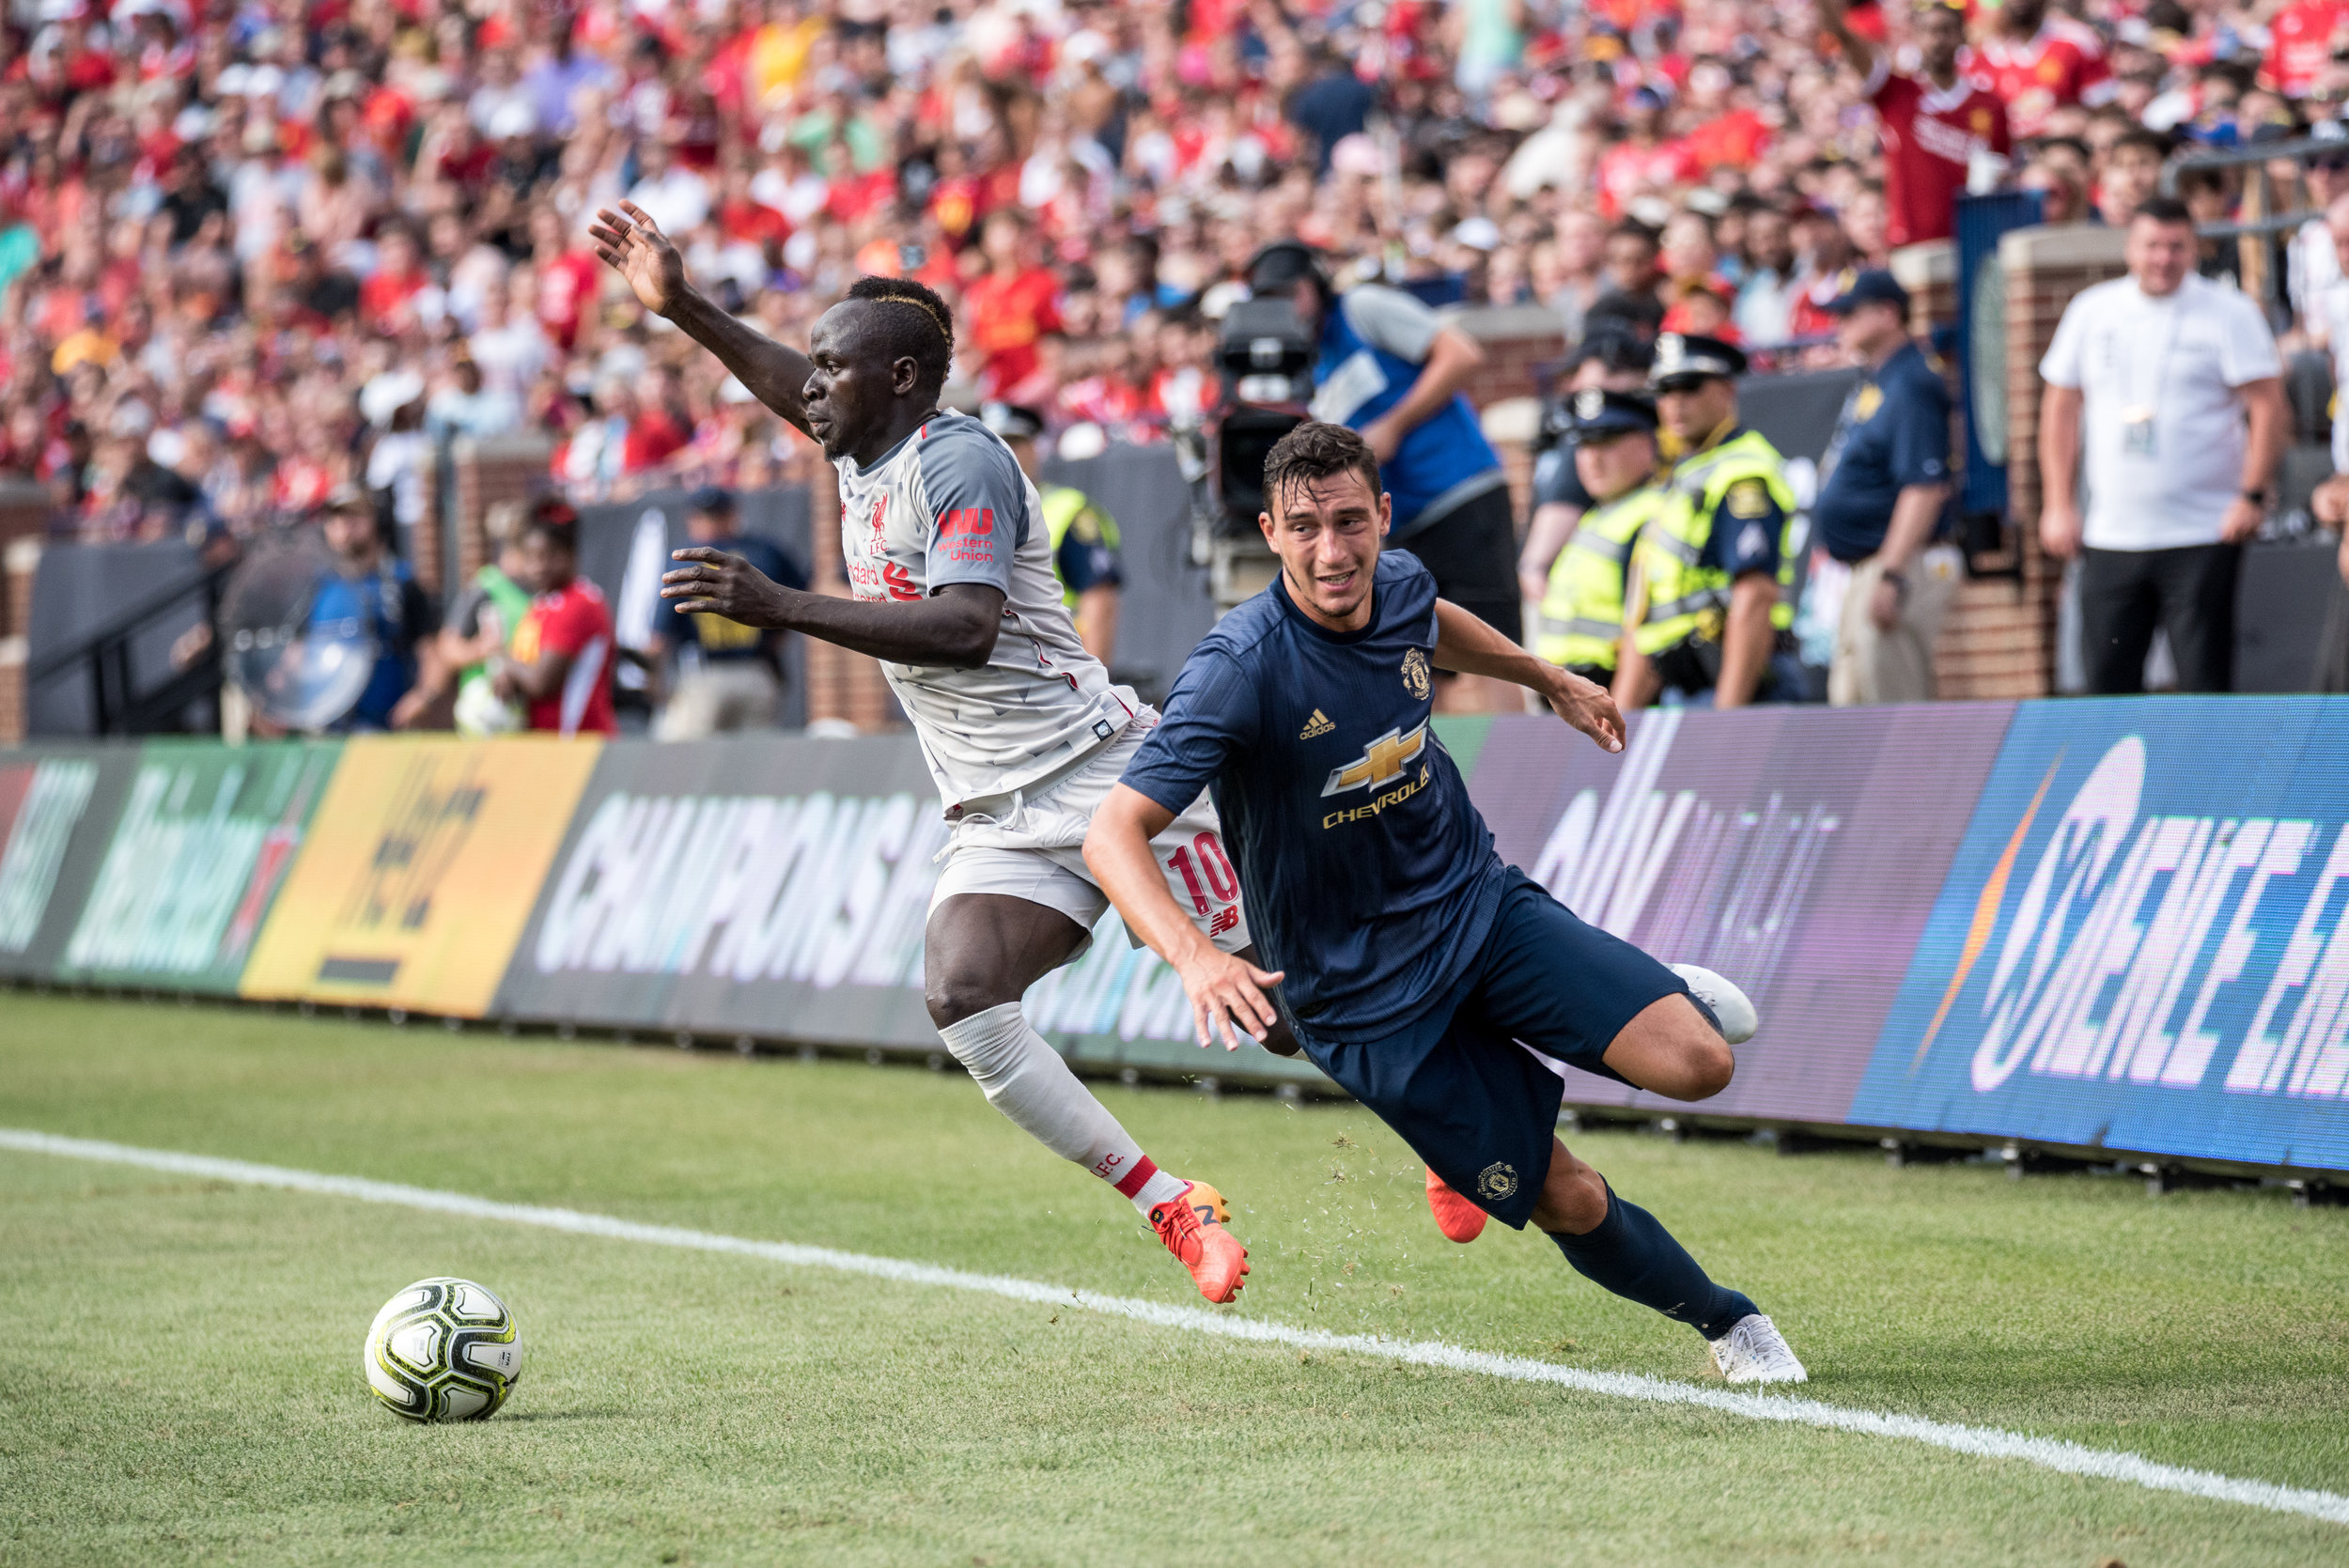 Matteo Darmian (36) struggled to deal with the likes of Sadio Mané (10) throughout Saturday's match - Photo: Elizabeth Wenner